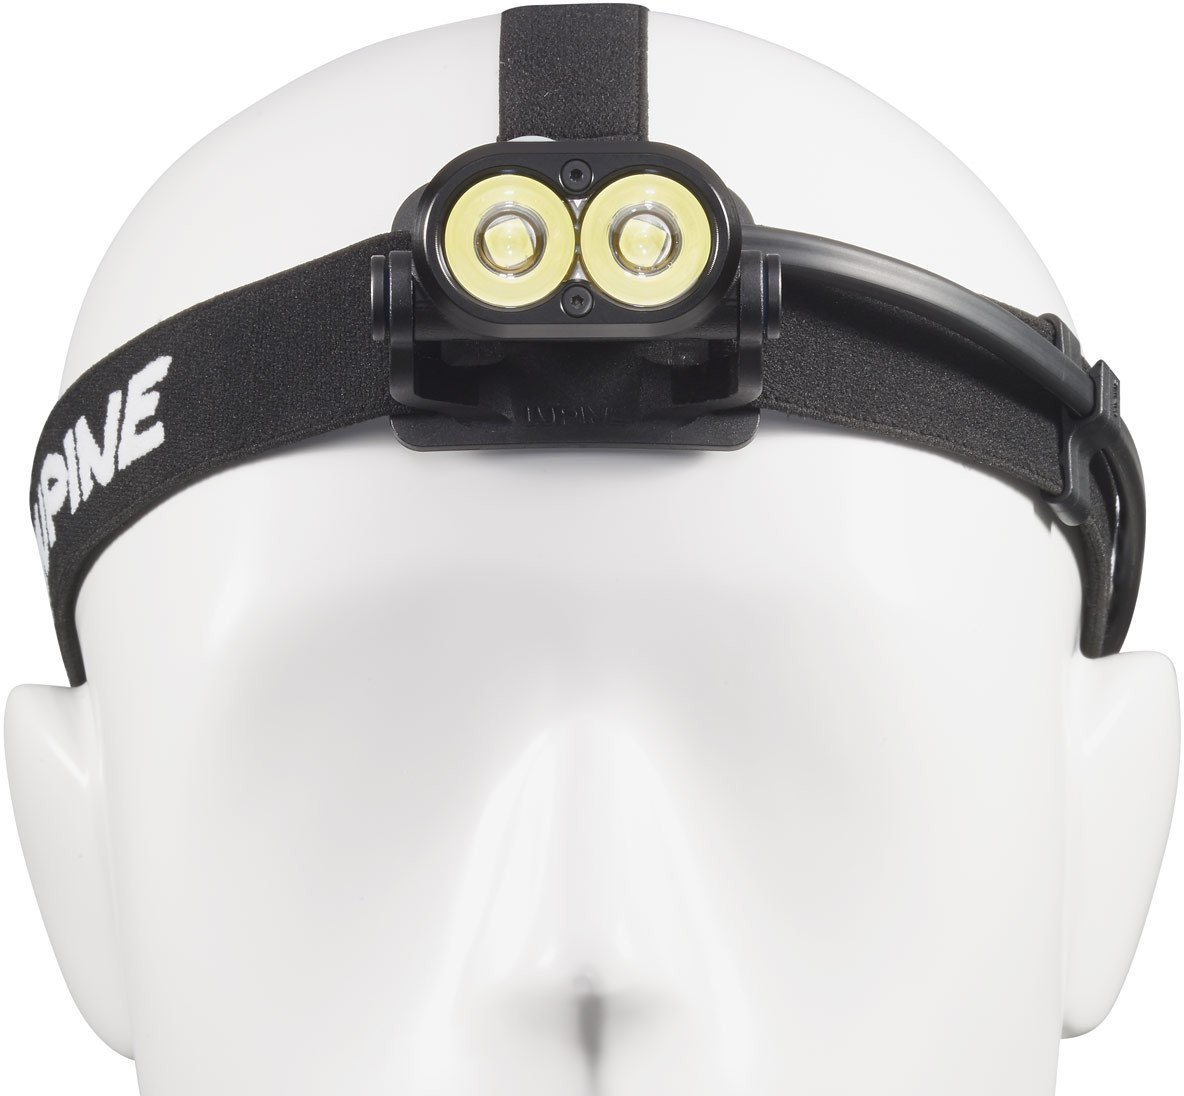 Lupine Lighting Systems Piko RX 4 Headlamp System 1800 Lumen LED Bluetooth with Rechargeable 3.3Ah SmartCore Battery by Lupine Lighting Systems (Image #3)